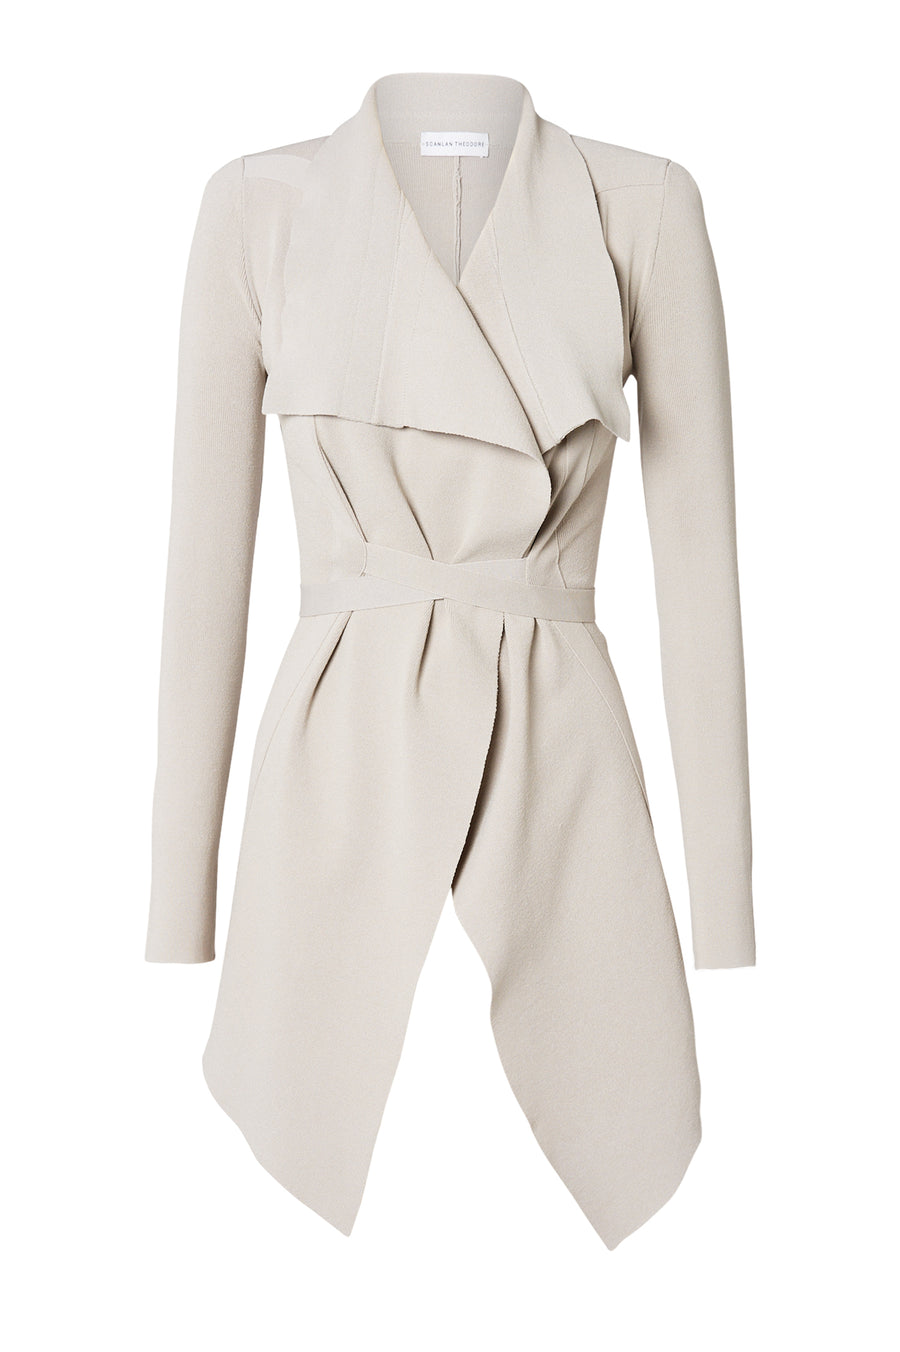 CREPE KNIT DRAPE FRONT JACKET, OYSTER color